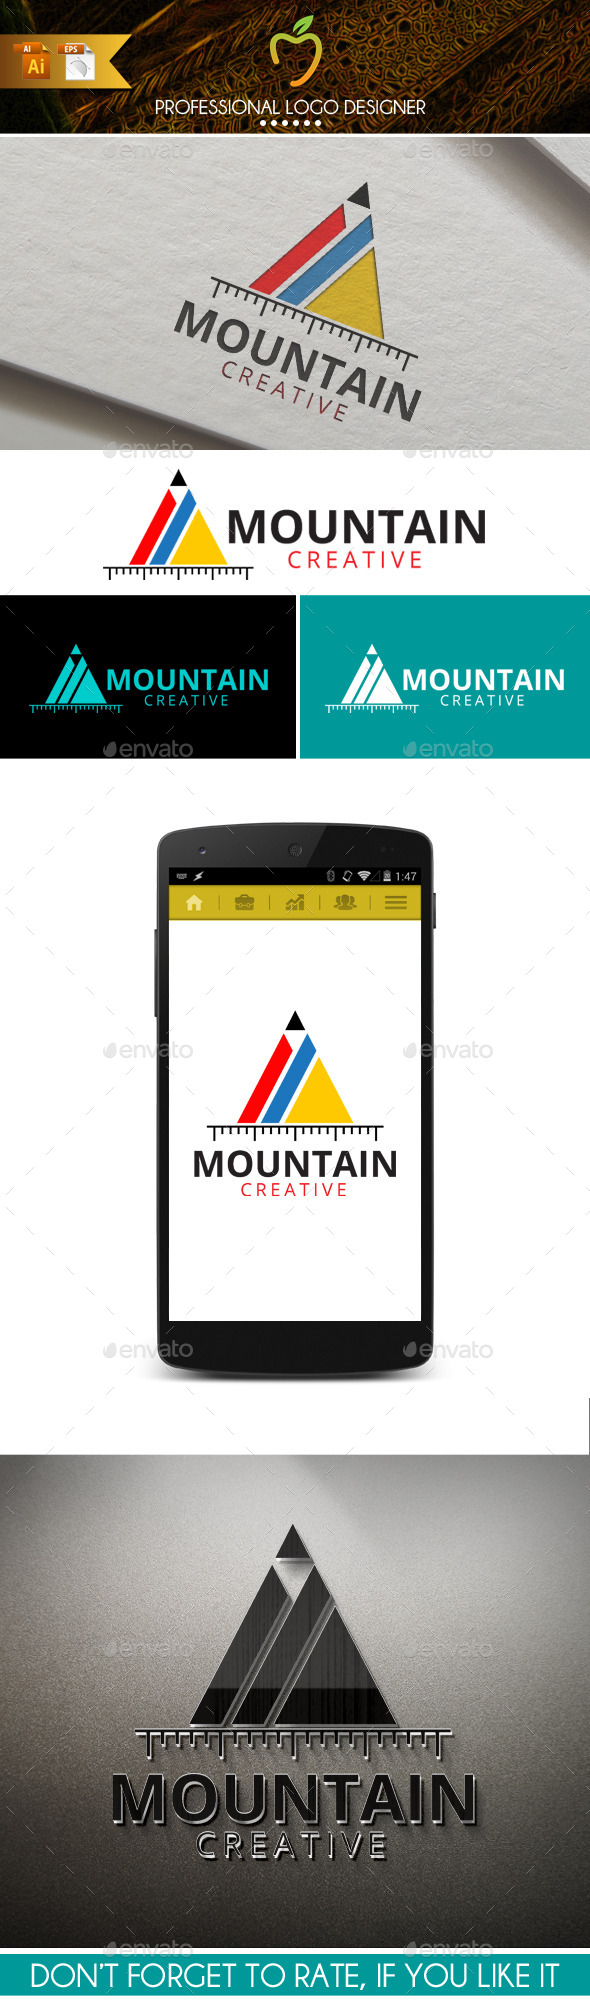 Mountain Creative Logo